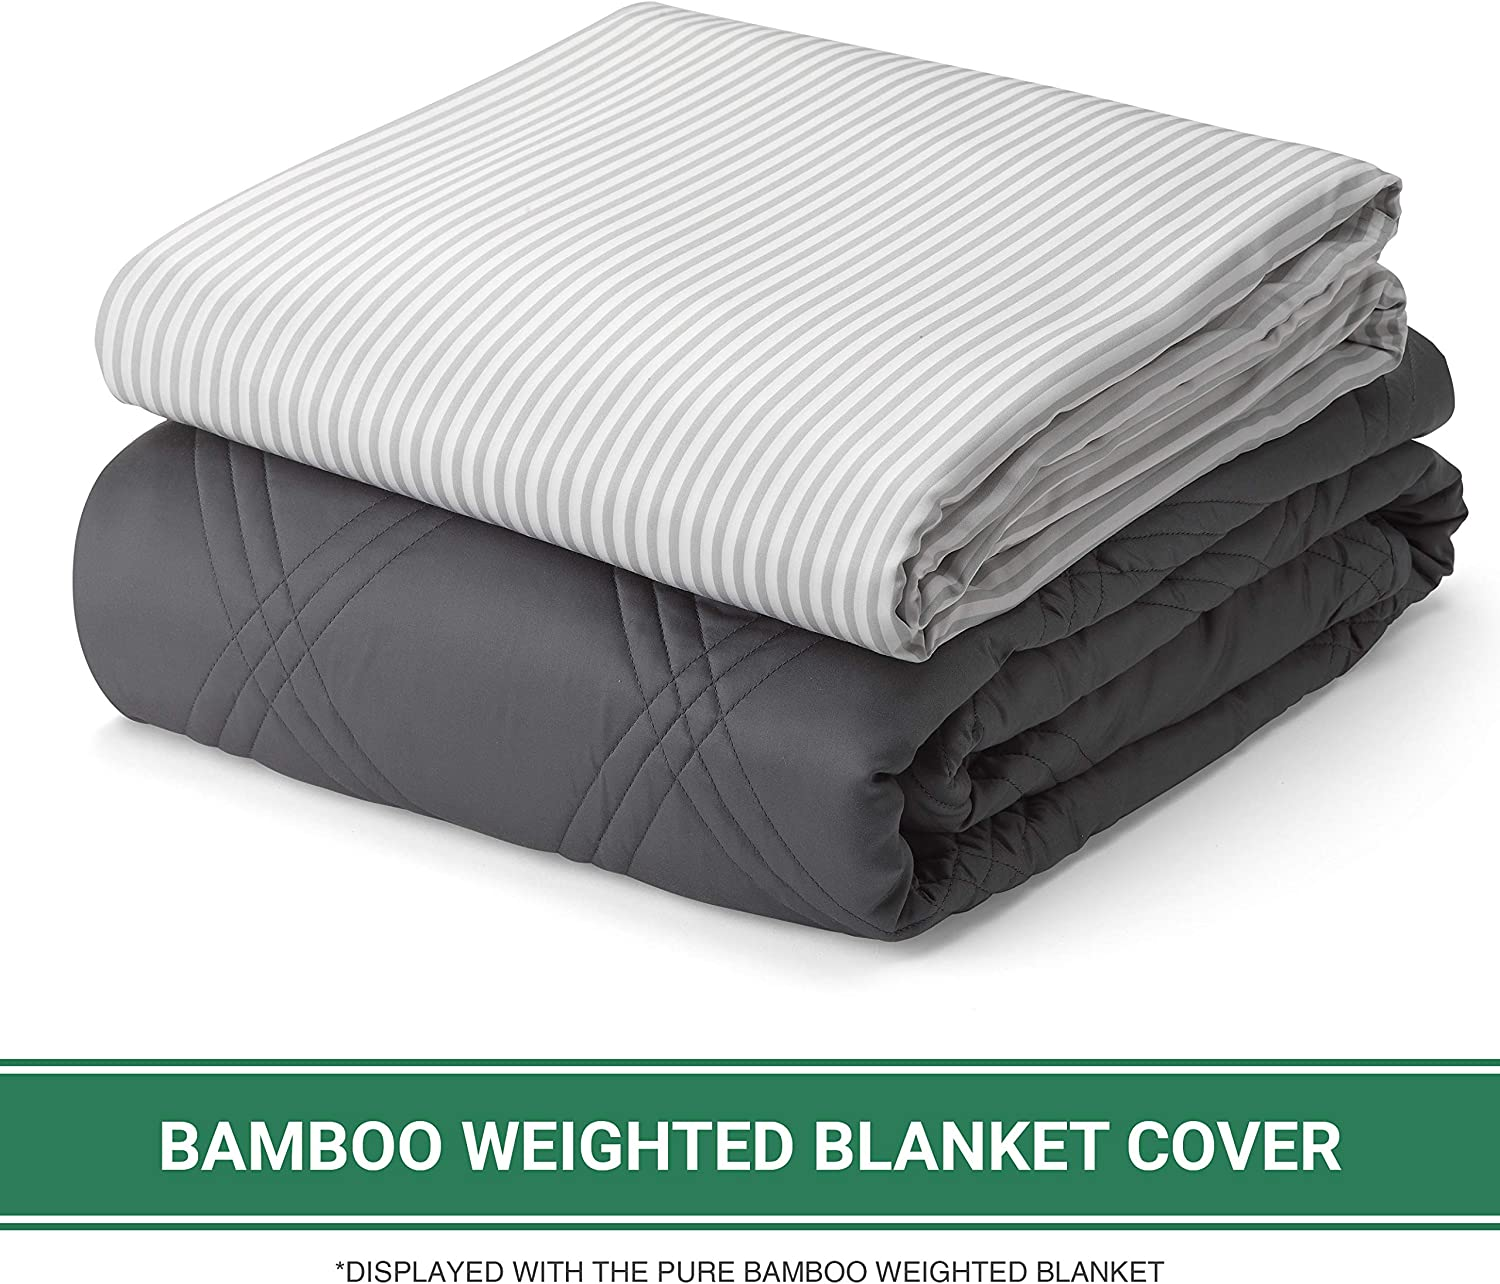 Pure Bamboo – Queen Weighted Blanket Cover 60x80 – 100% Organic Bamboo Viscose Blanket Duvet Cover with 8 Snaps